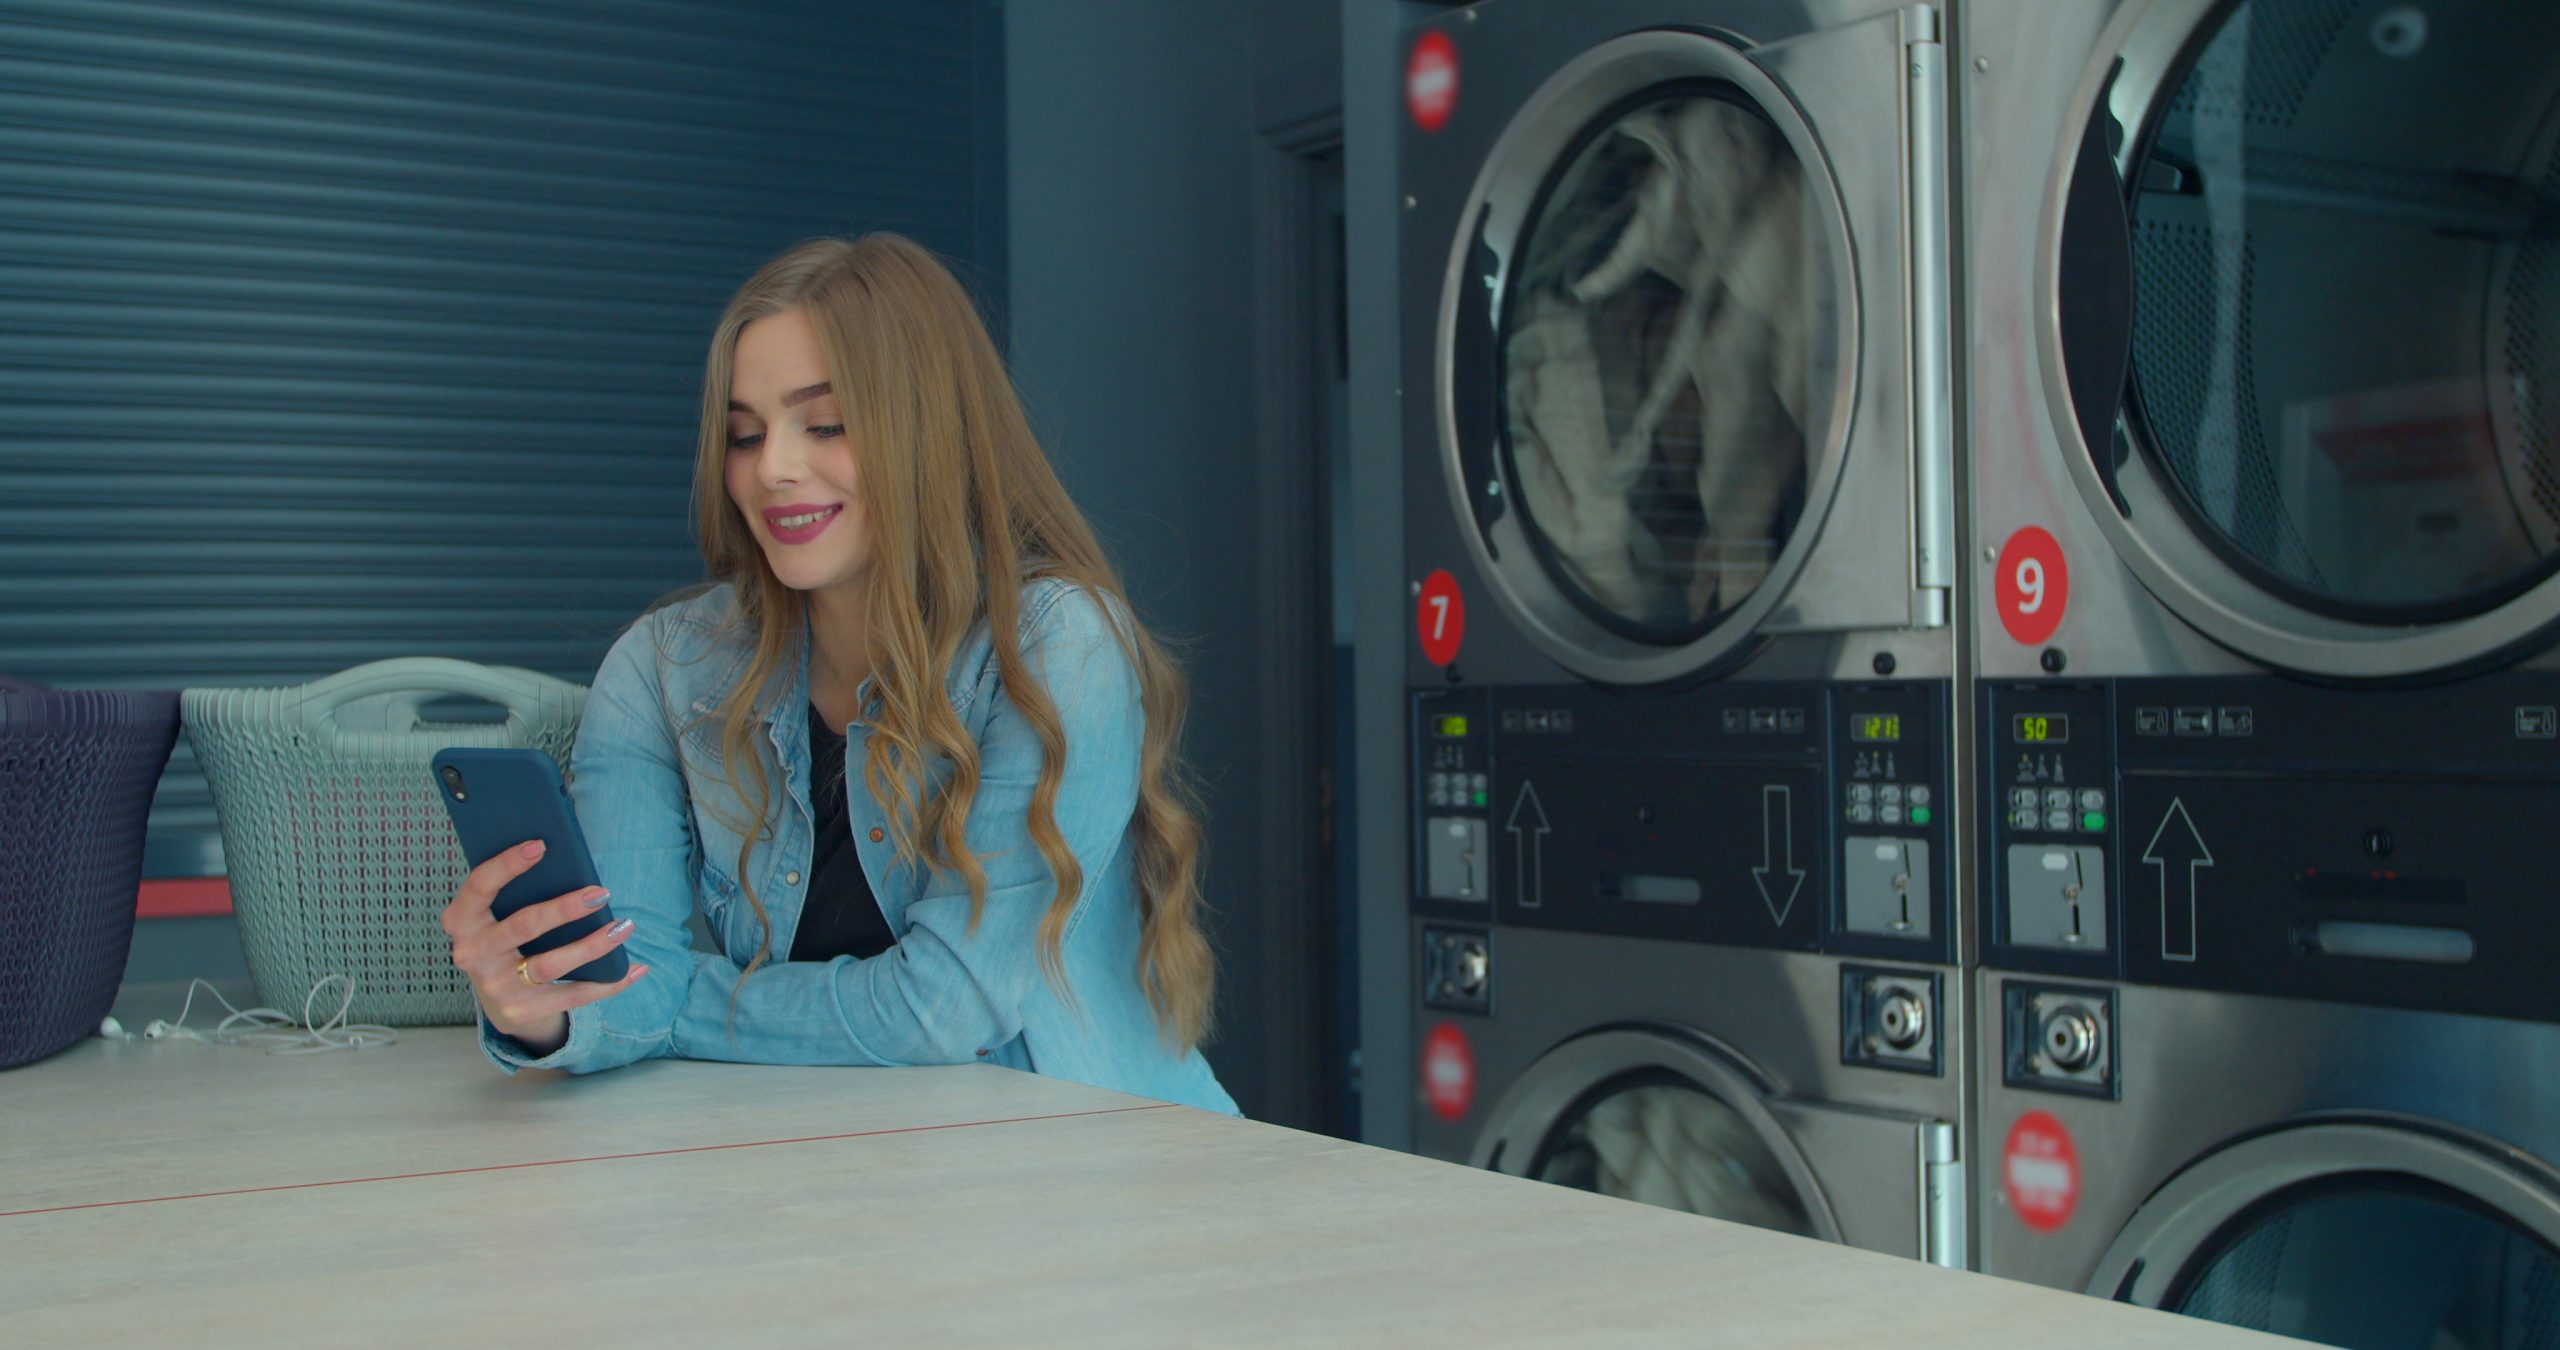 How CyclePay Streamlines the Process of Doing Laundry